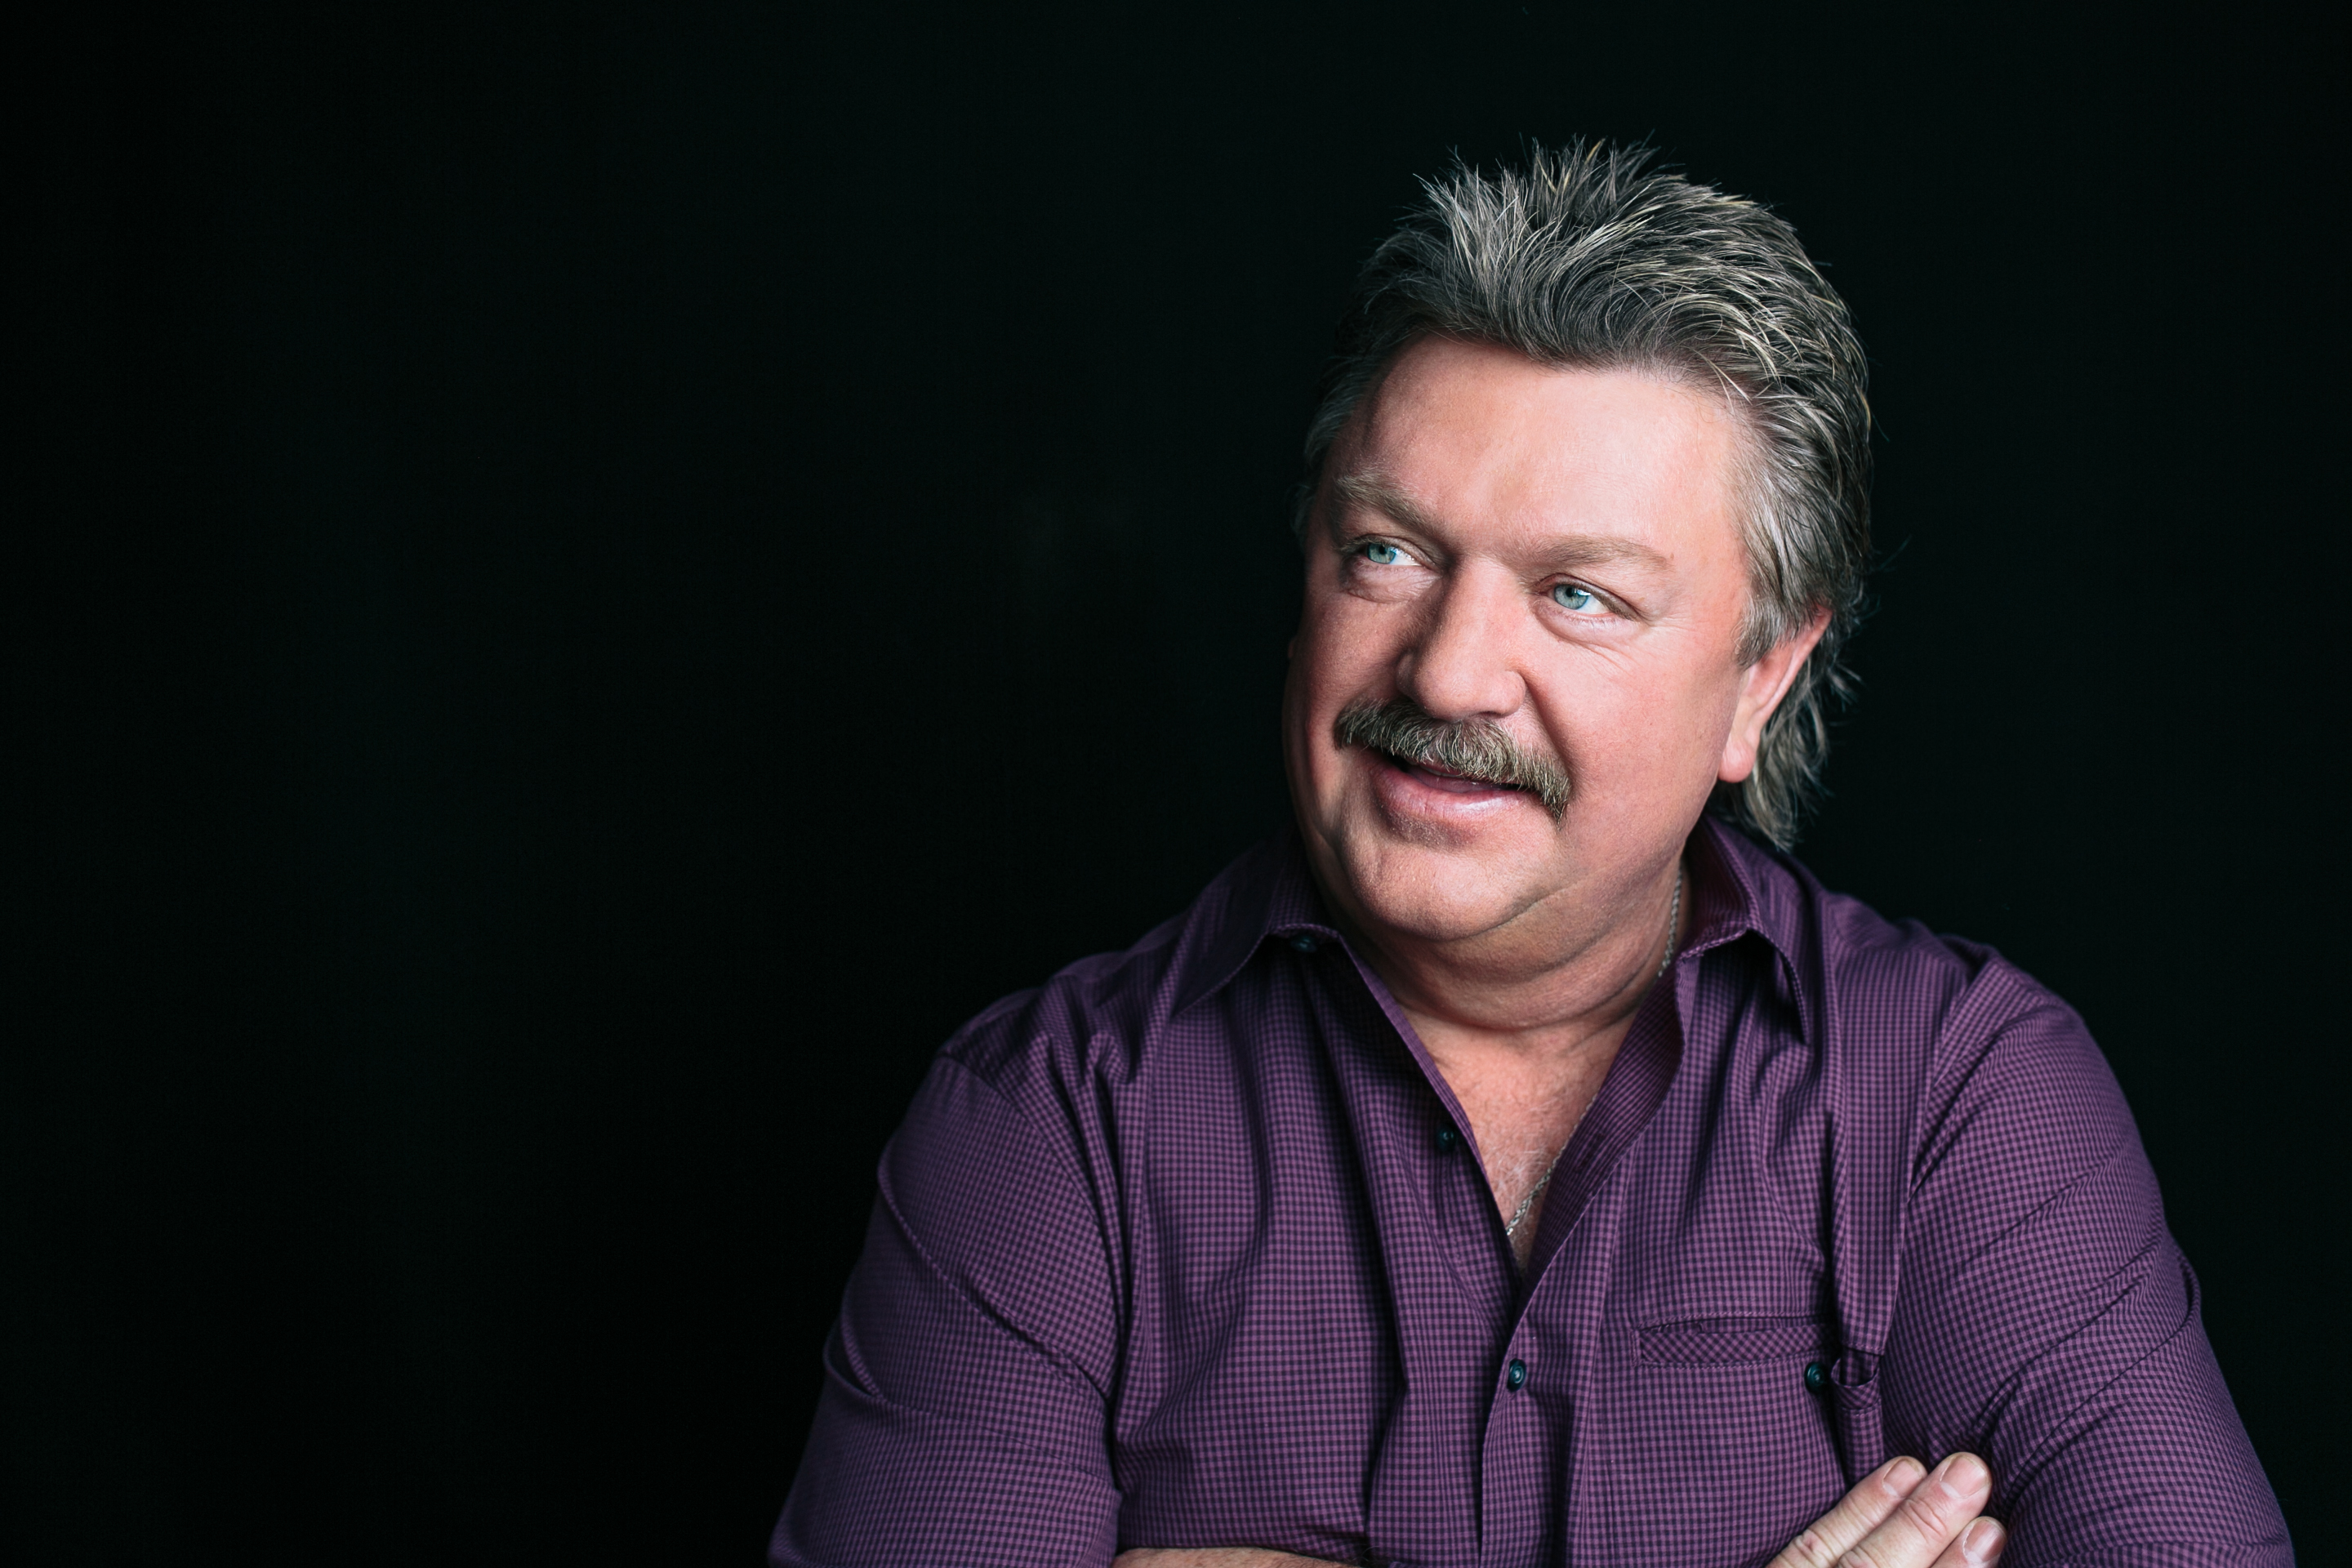 Joe Diffie Passed Away at Age 61 From Complications of Coronavirus (COVID-19)